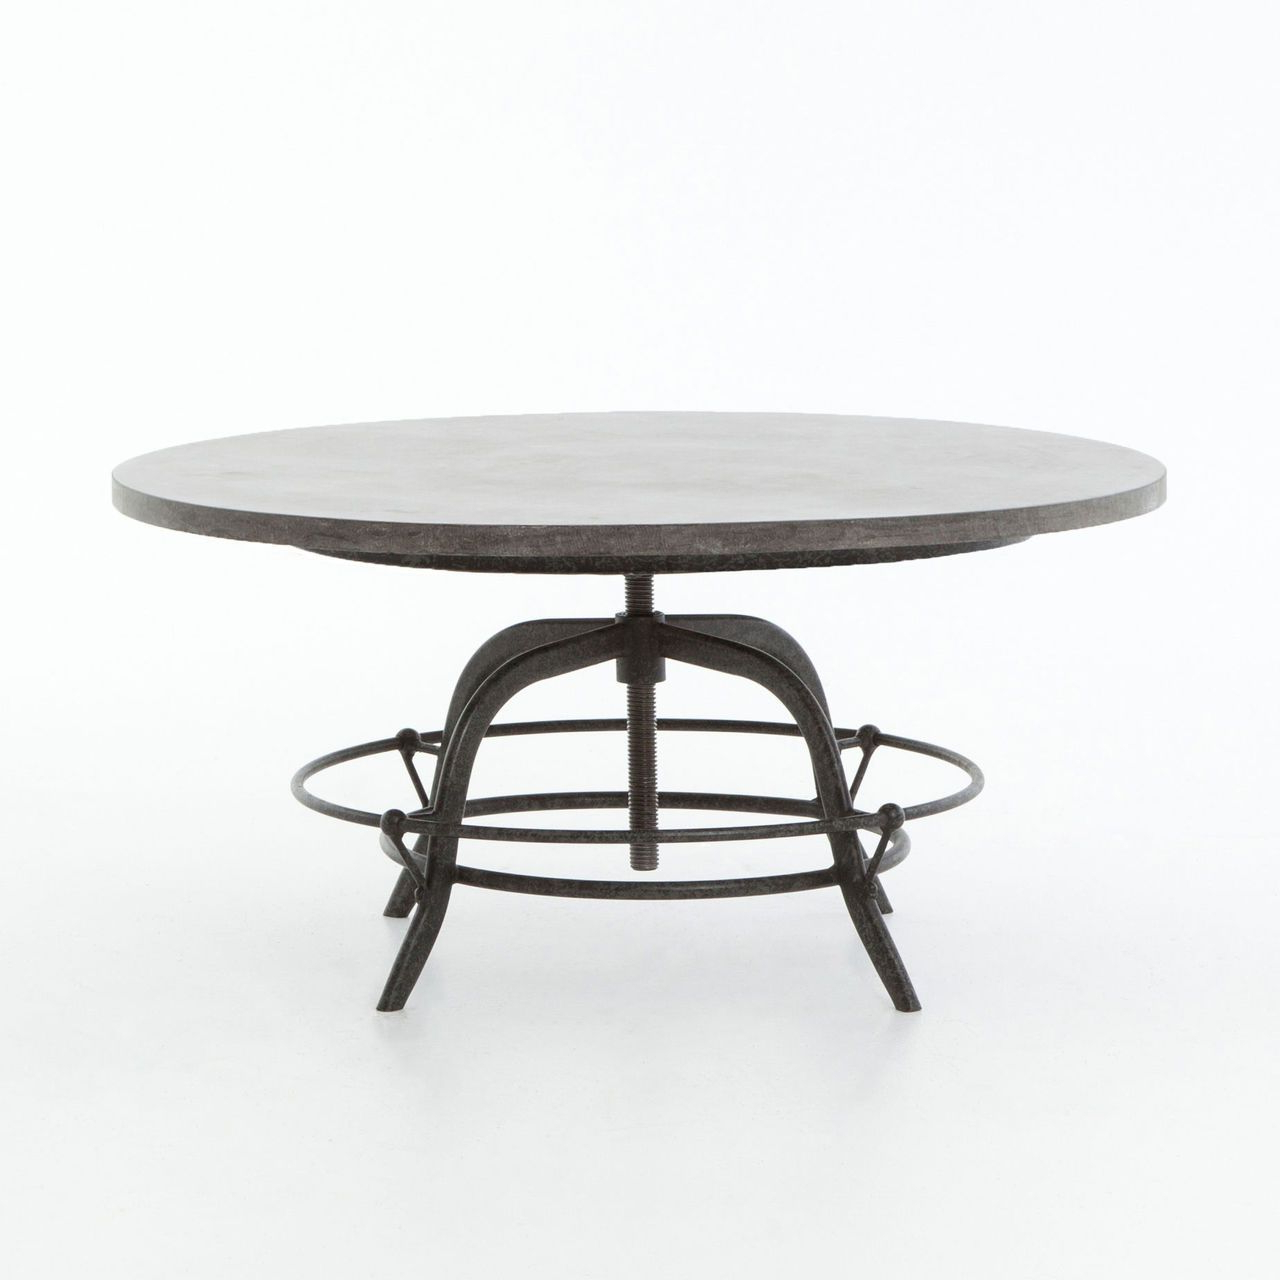 Bluestone Rustic Black Coffee Tables Throughout Widely Used French Industrial Bluestone Top Round Crank Coffee Table (View 5 of 20)